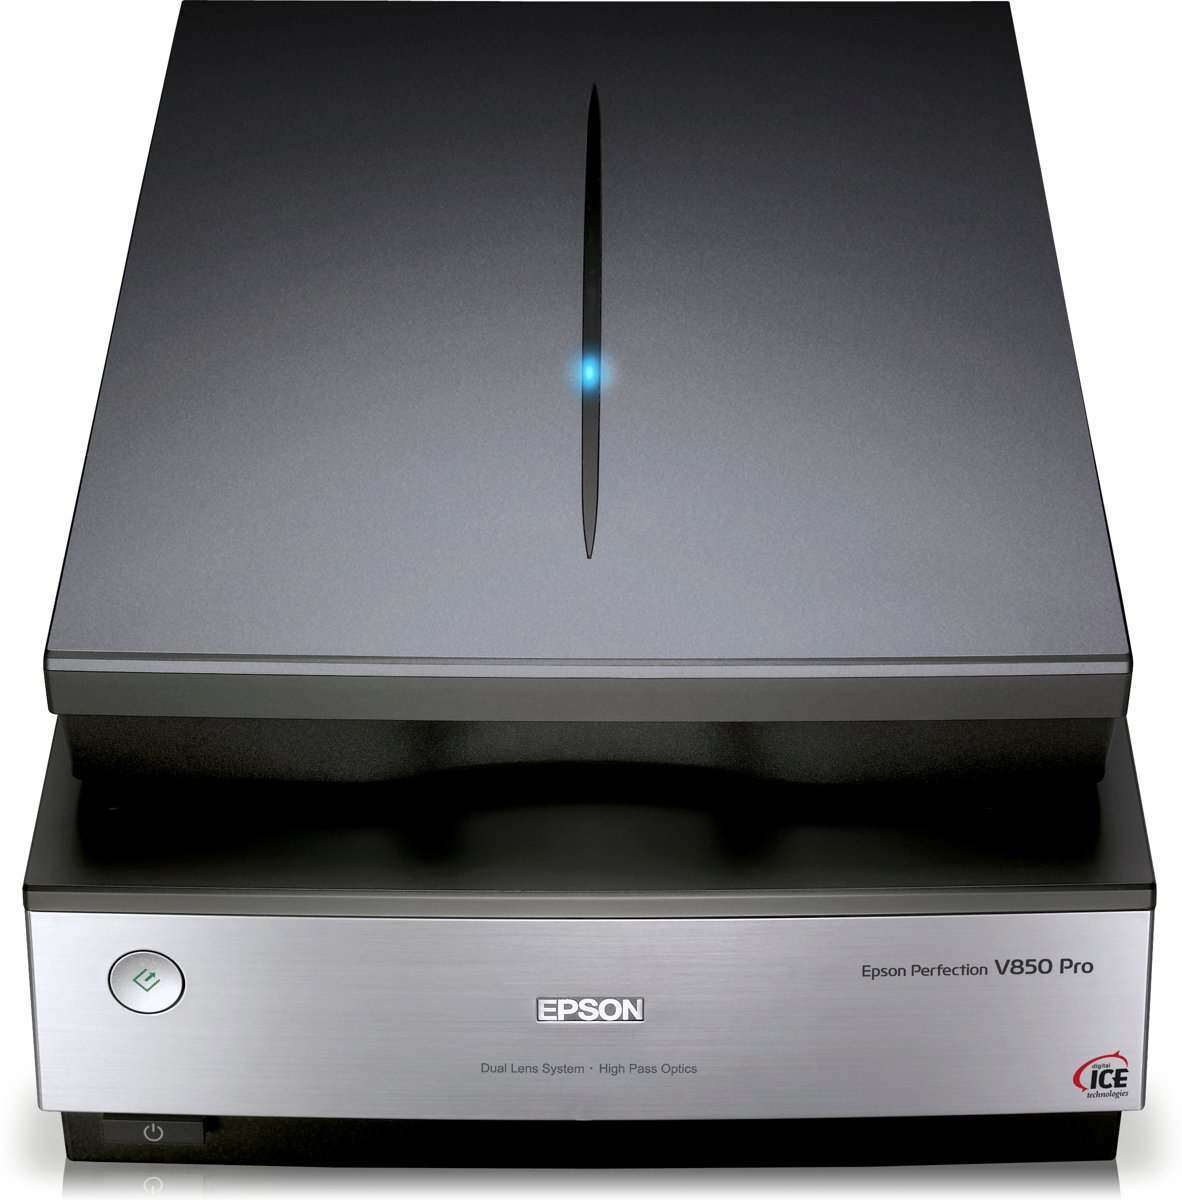 EPSON Perfection V850 Pro kopen